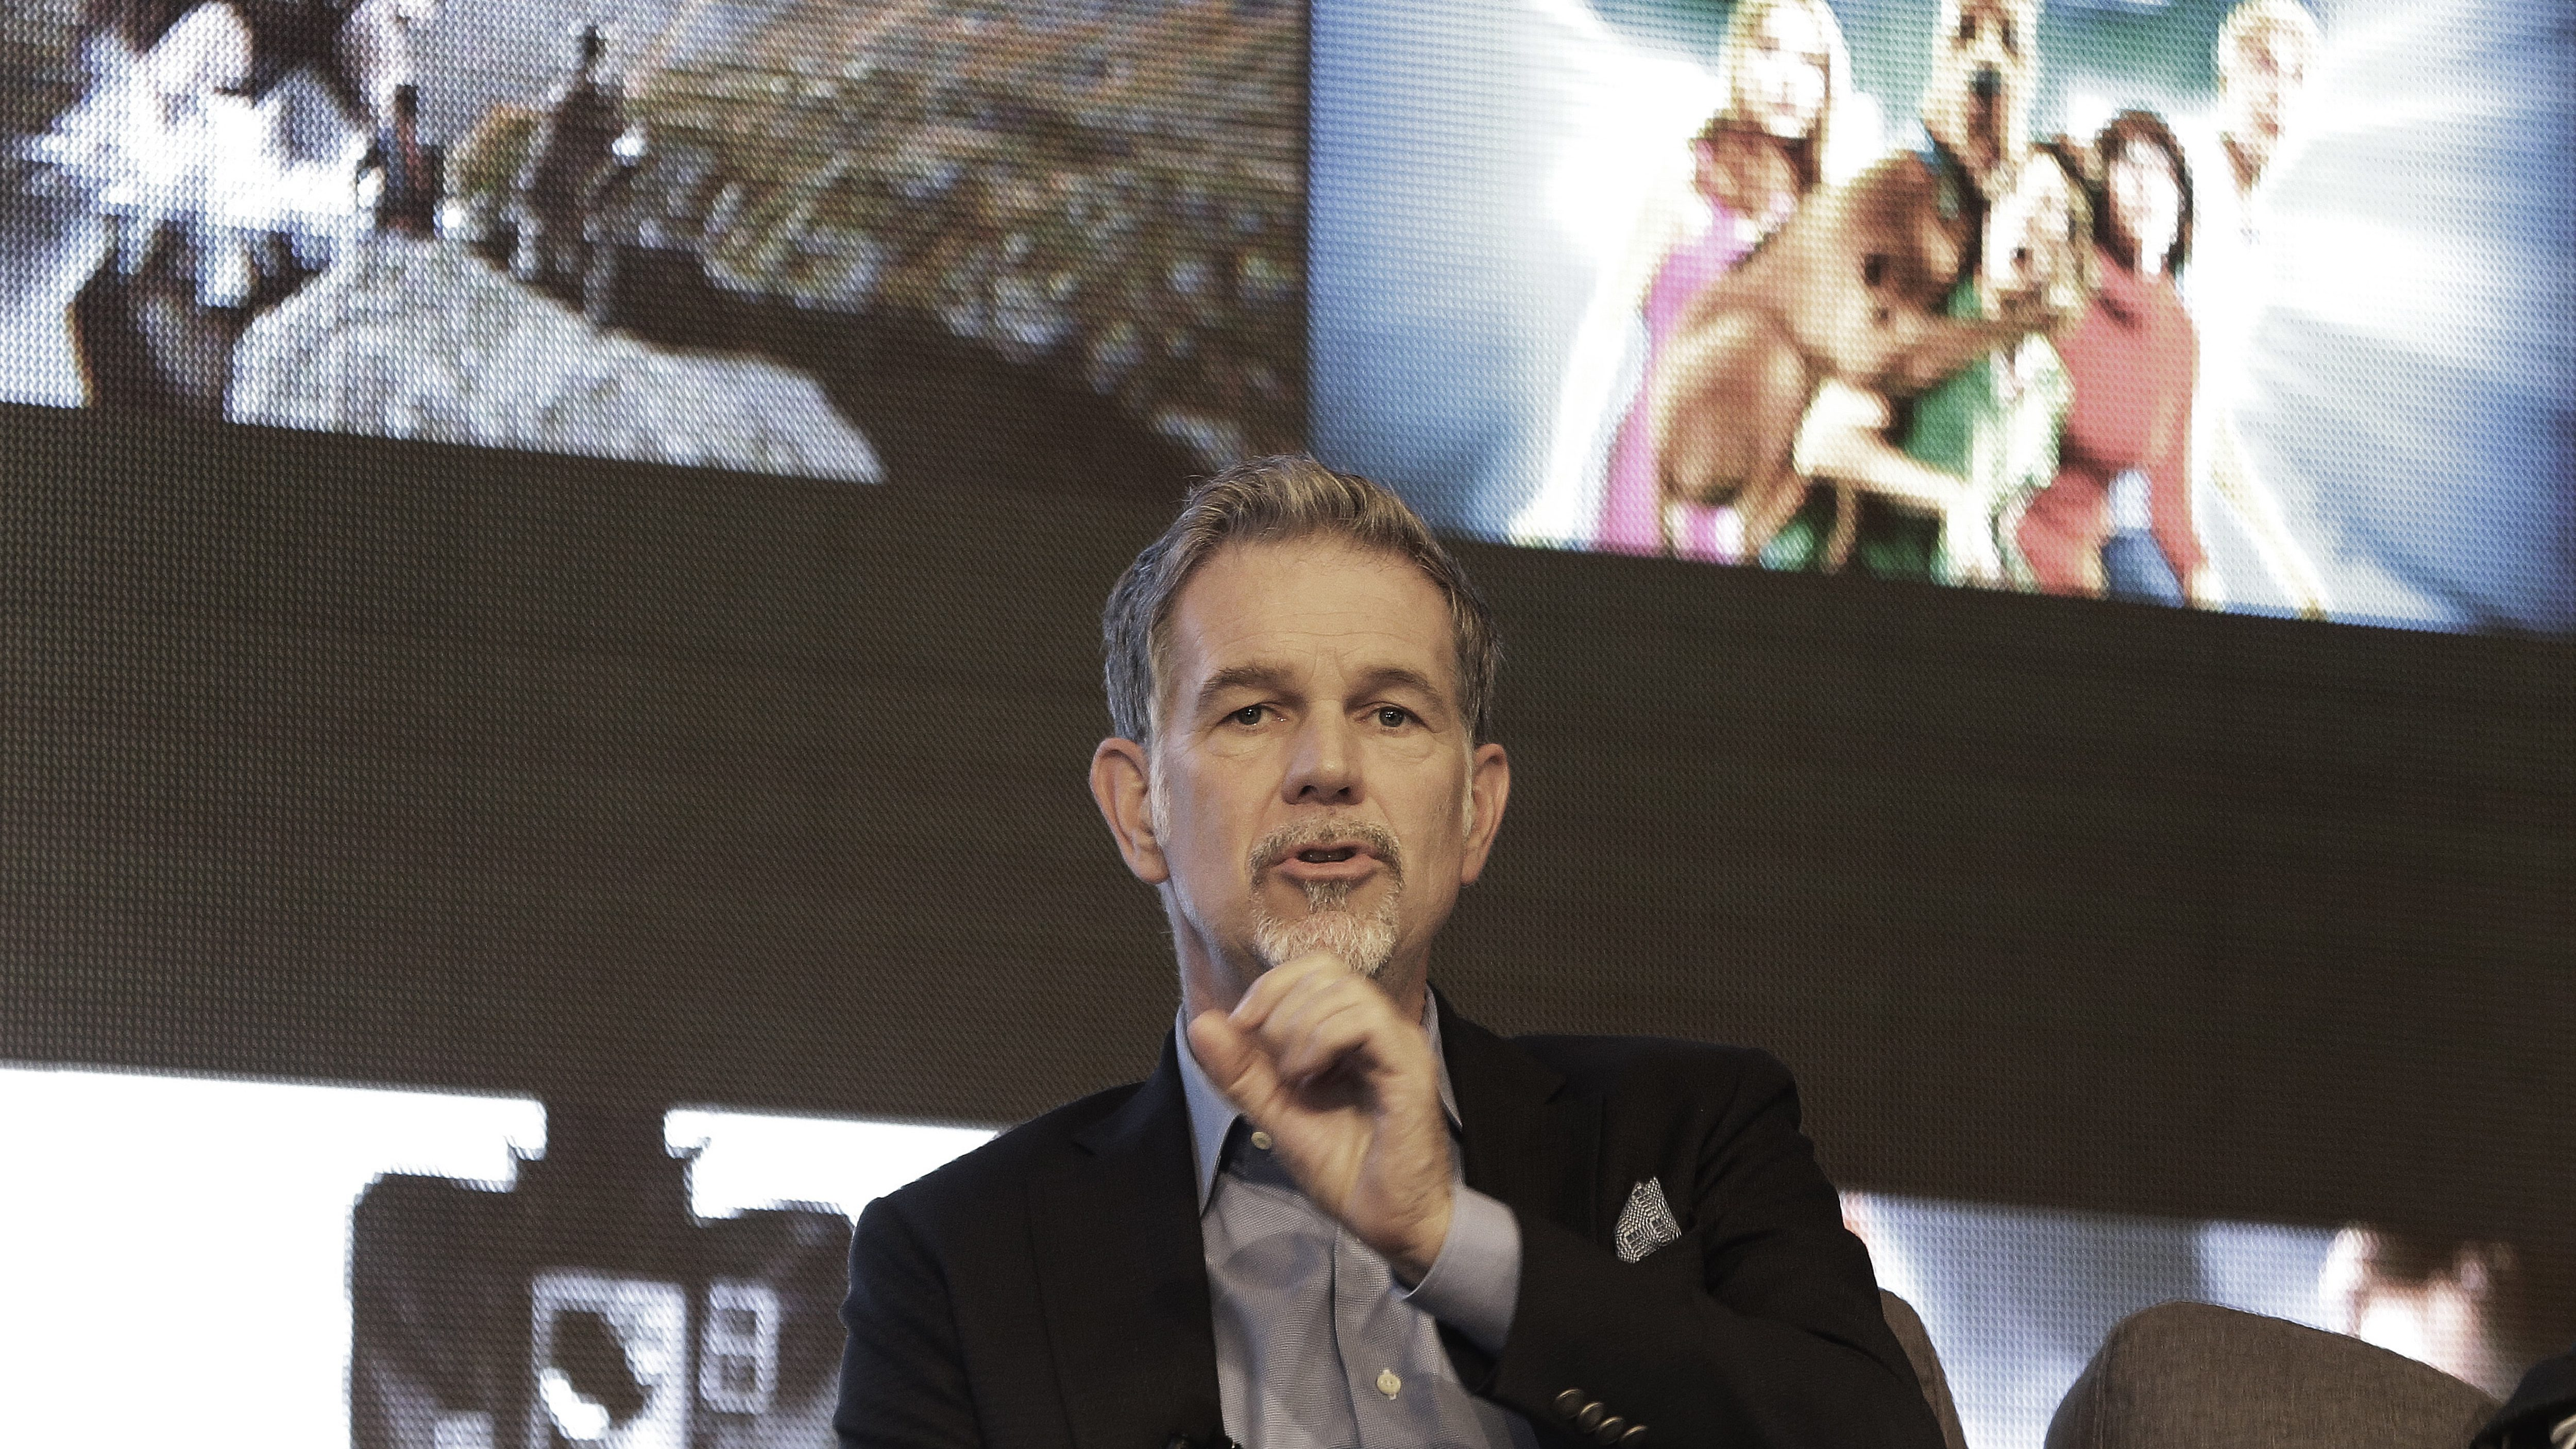 Reed Hastings, CEO of Netflix, speaks during a press conference in Seoul, South Korea, Thursday, June 30, 2016. Netflix plans to expand its Asian offerings to its subscribers around the world by tapping more creators in Asia. (AP Photo/Ahn Young-joon)